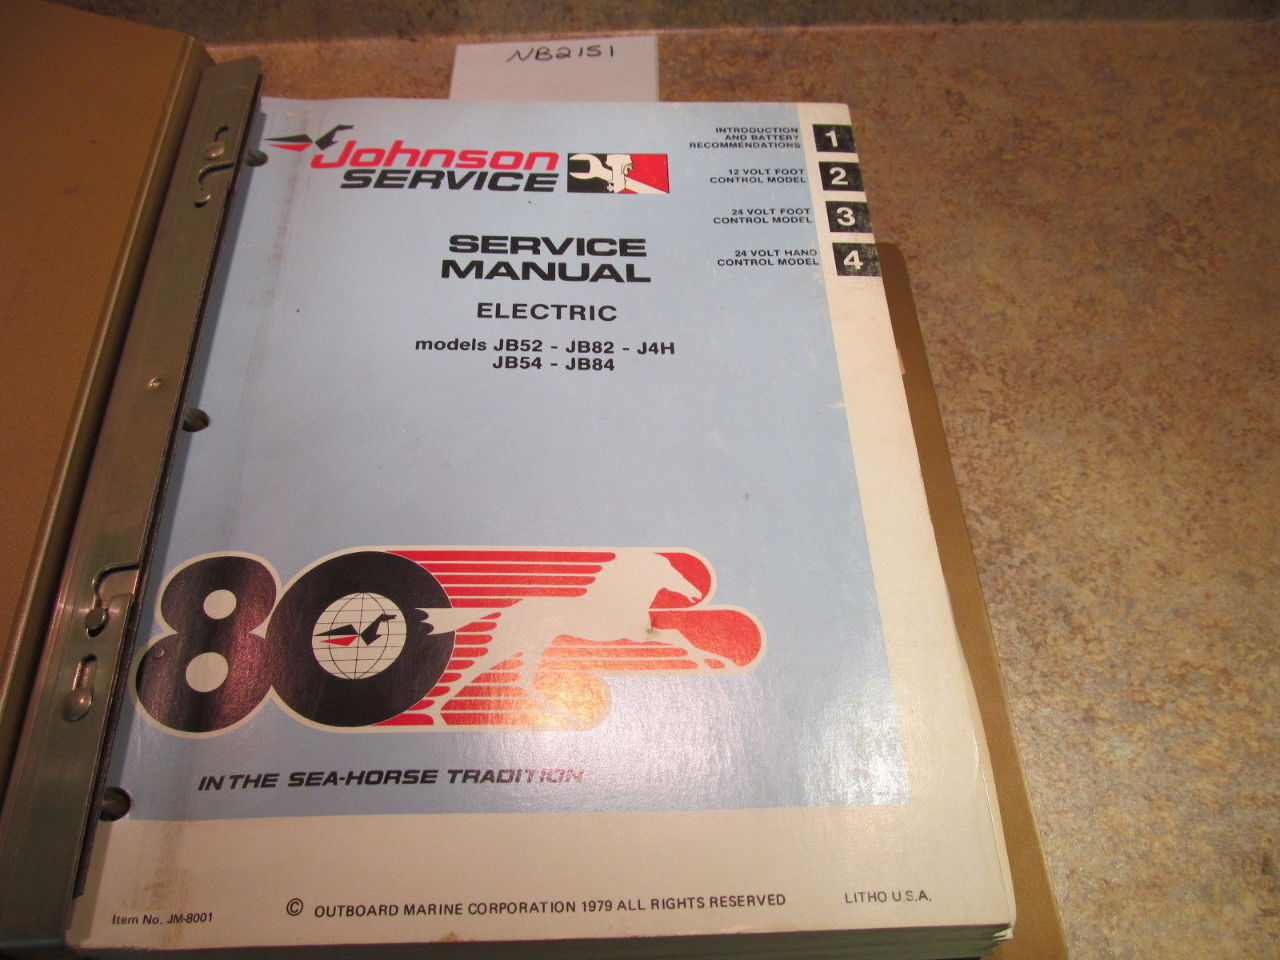 Service Manual For Yamaha Timberwolf 250 - abaneode